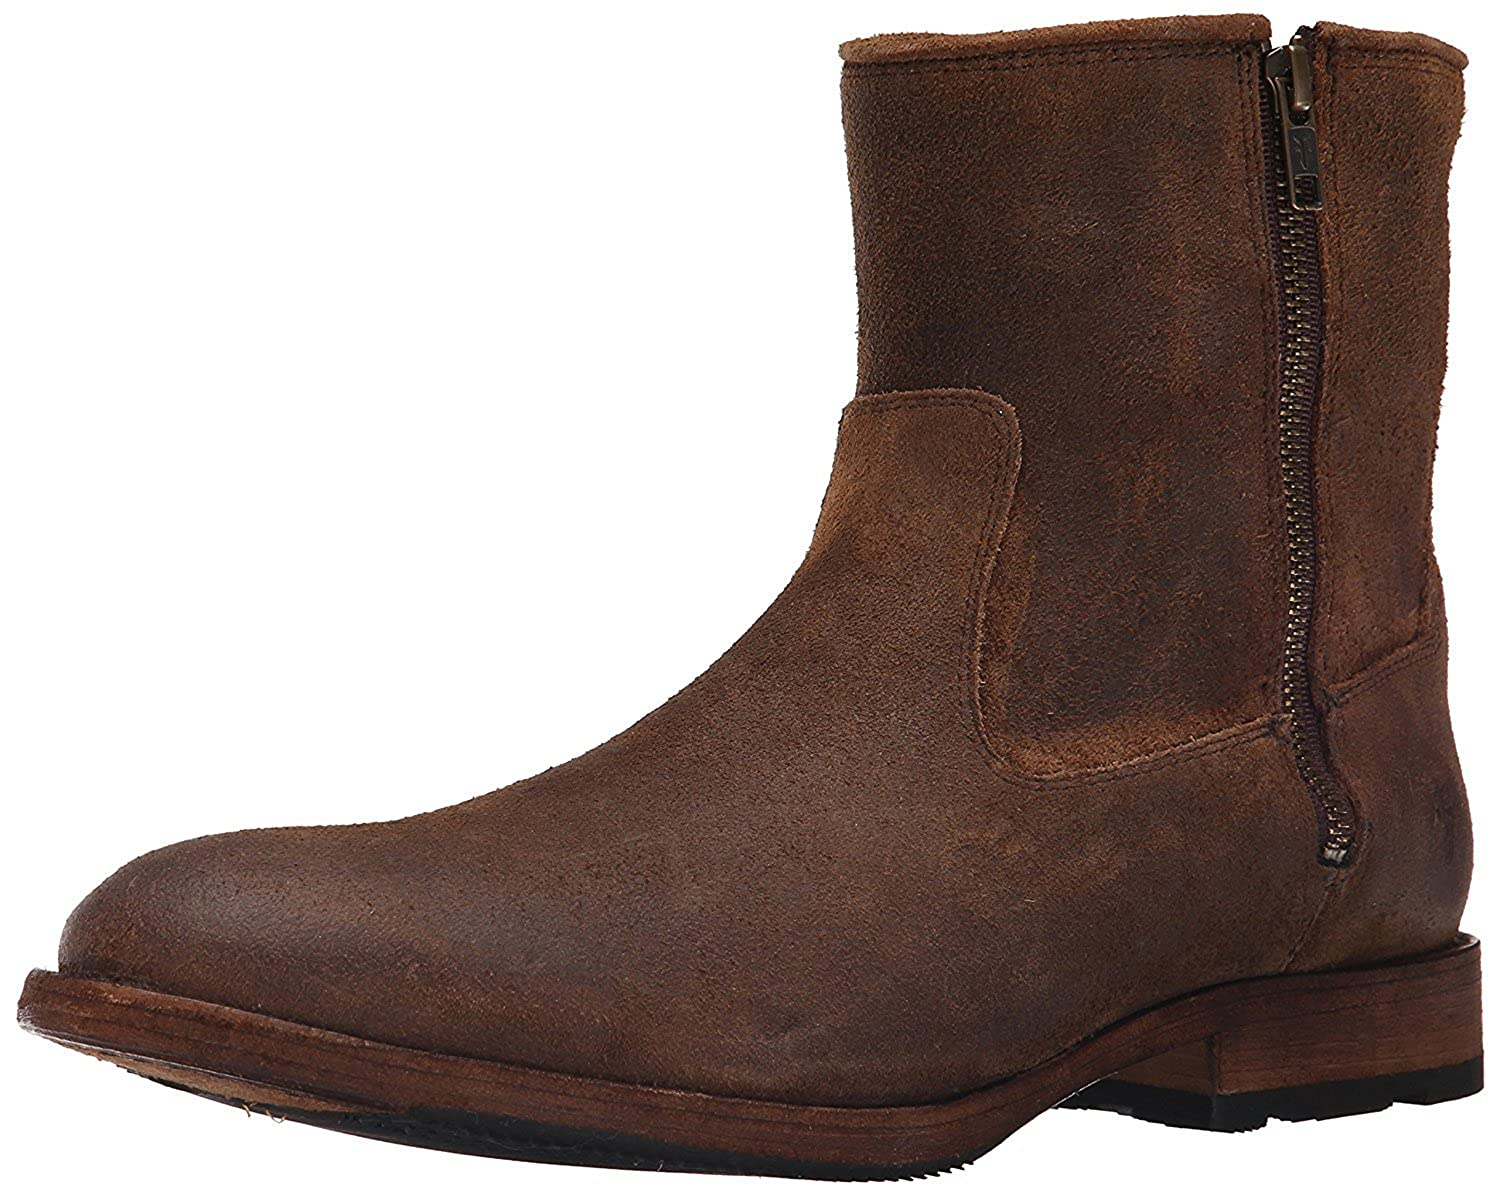 FRYE Men's Ethan Double Zip Boot Tan 9 M US [並行輸入品] B075GHYTLX